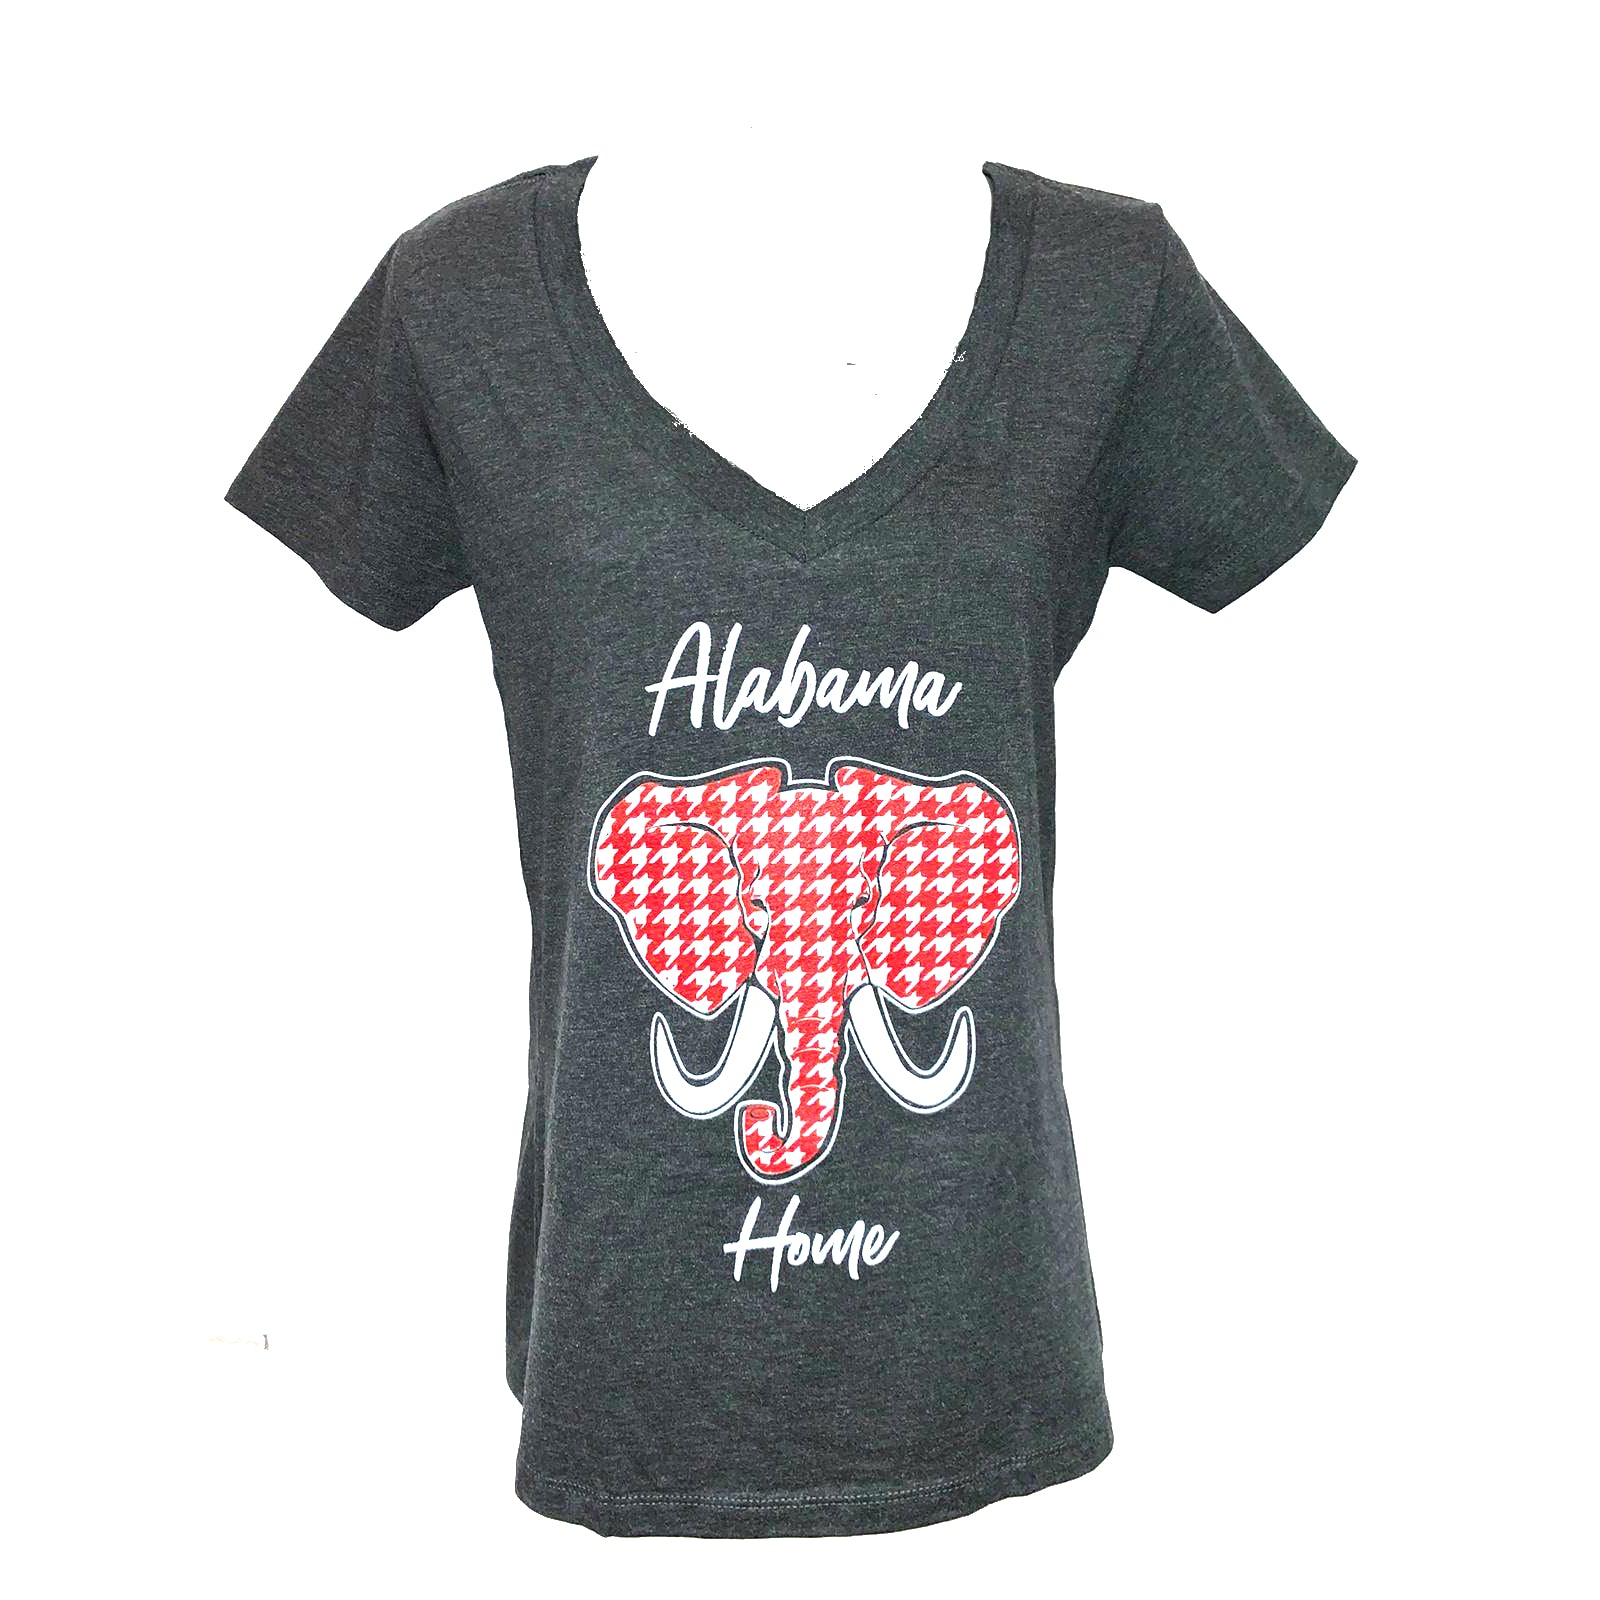 Alabama Crimson Tide Home T-Shirt